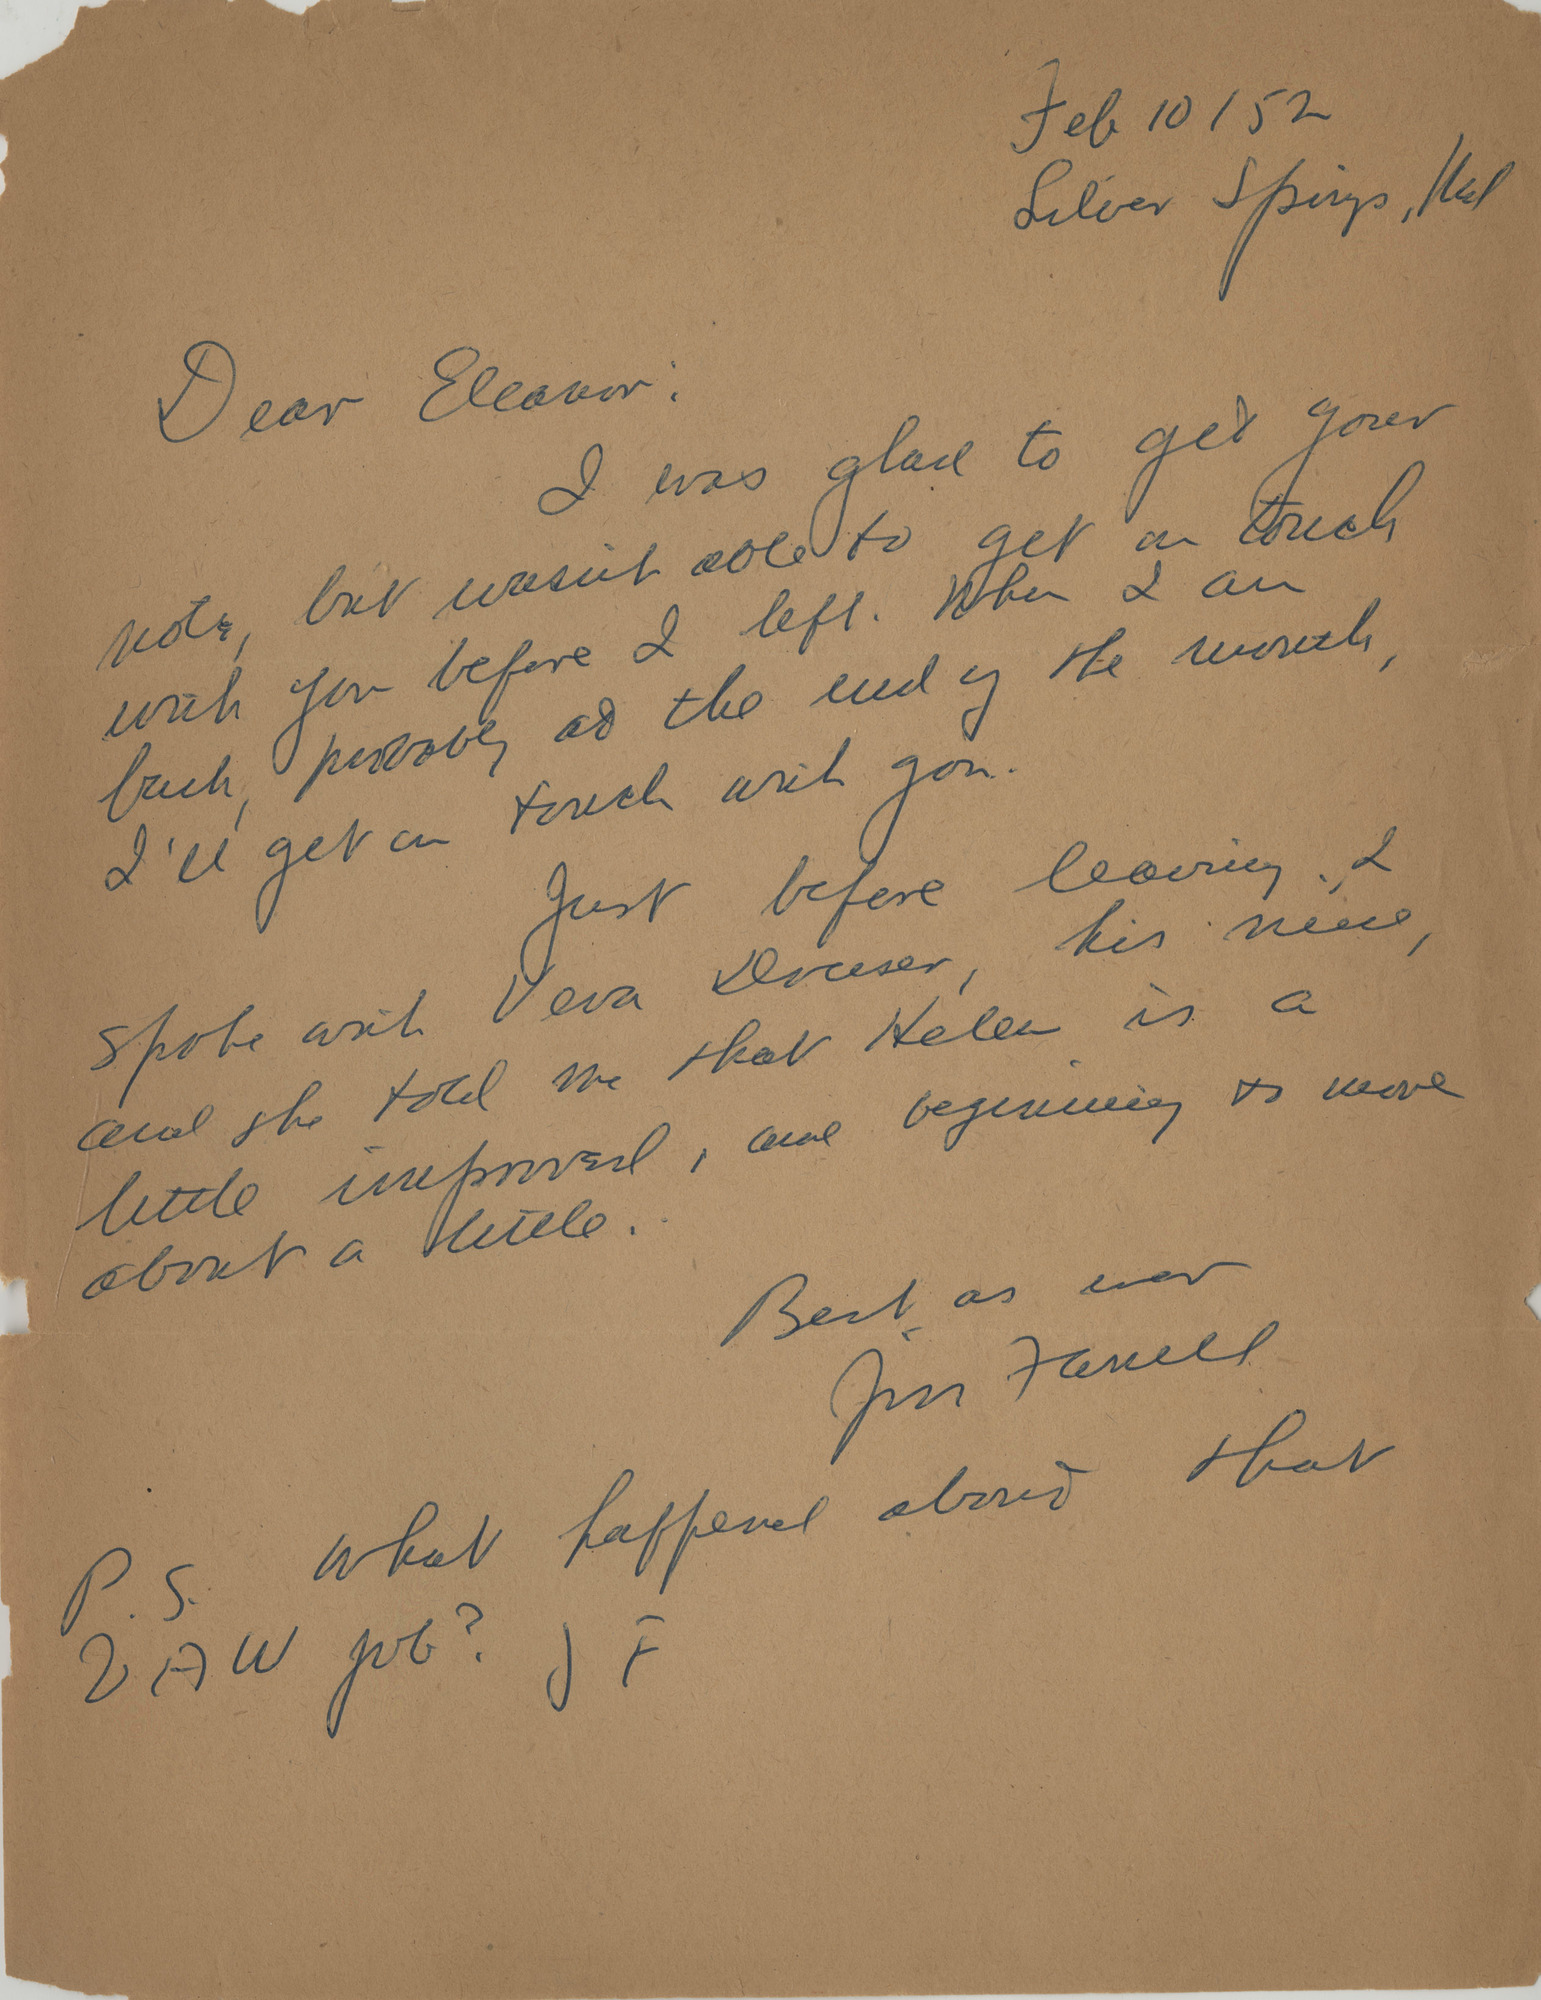 Letter, James T. Farrell to Eleanor Copenhaver Anderson, February 10, 1952